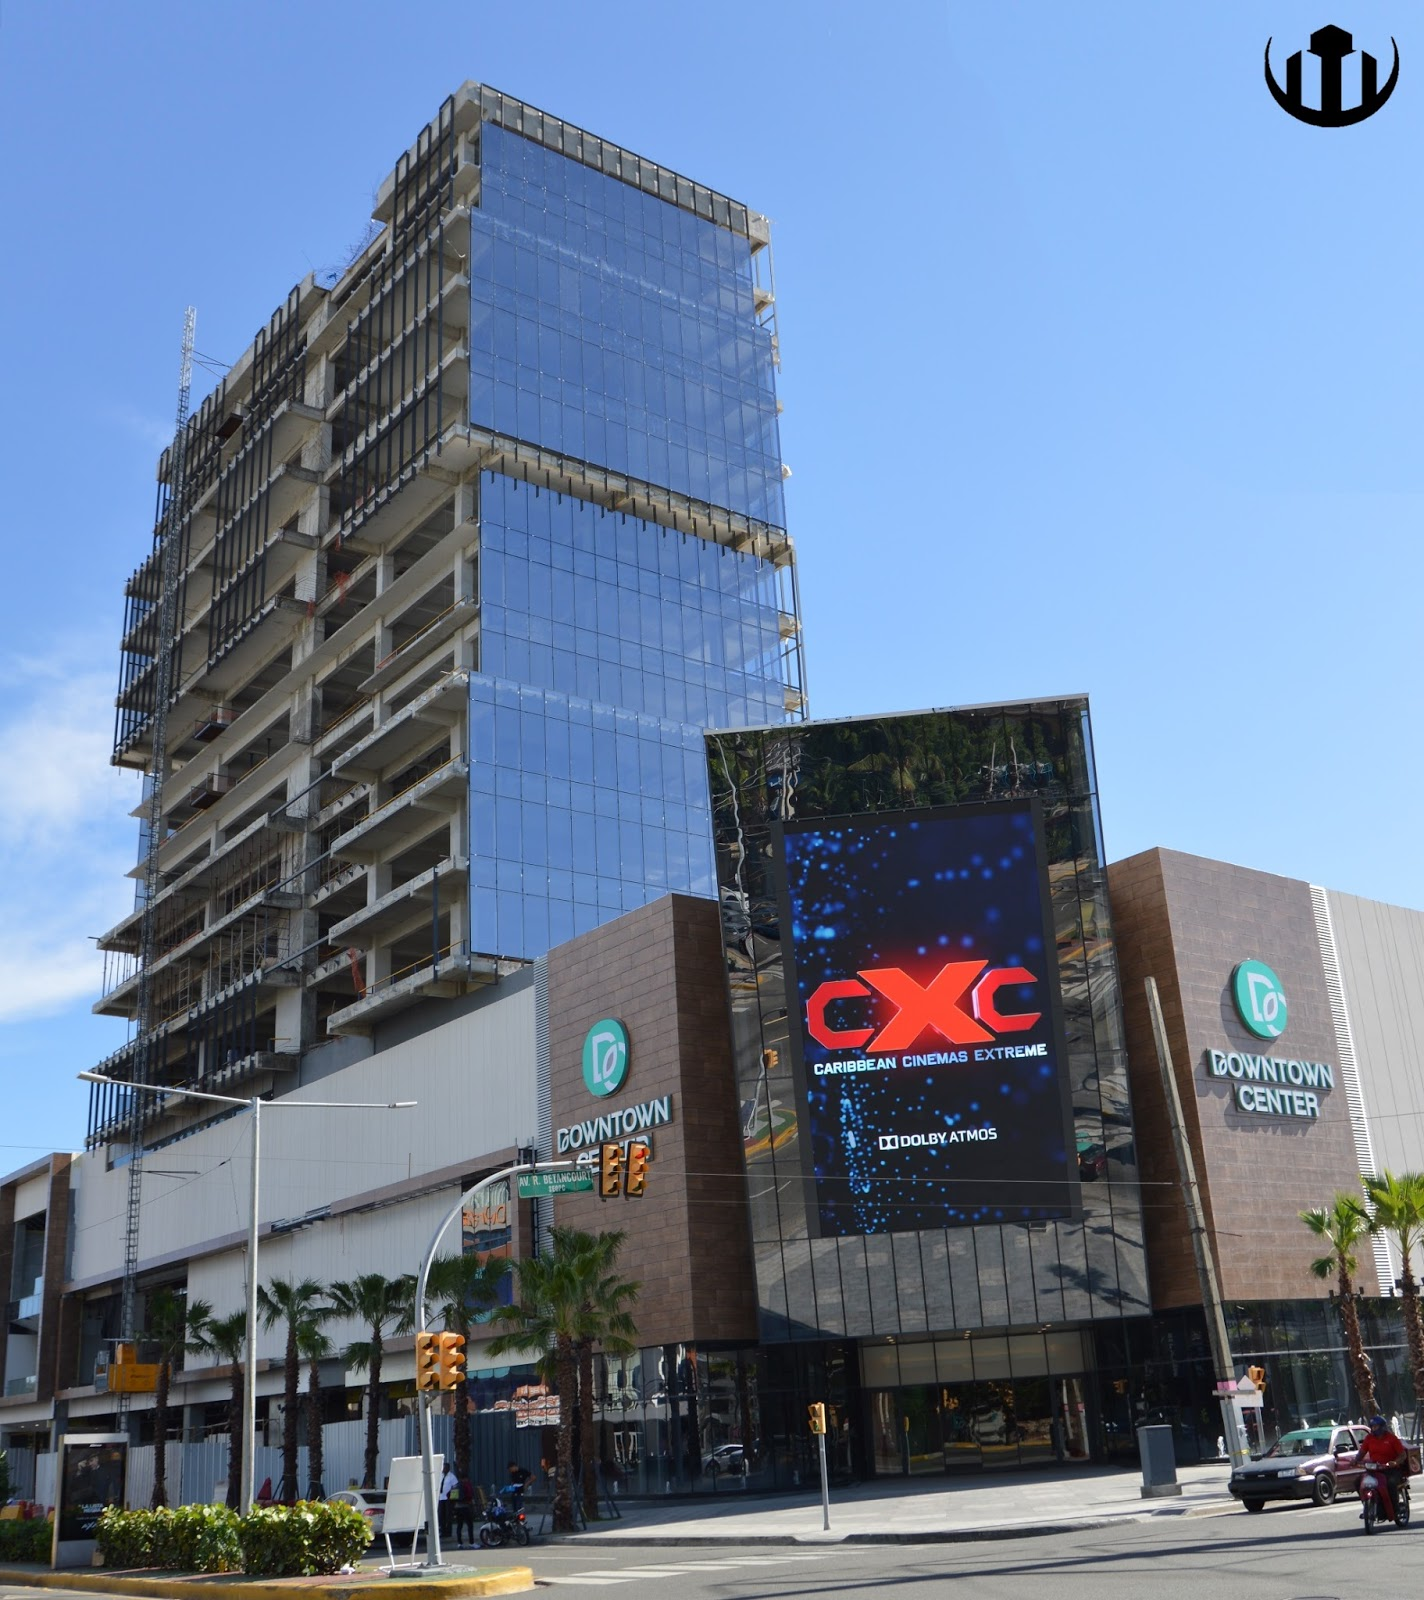 Largo Town Center: Downtown Center; Centro Comercial Y Torre Corporativa